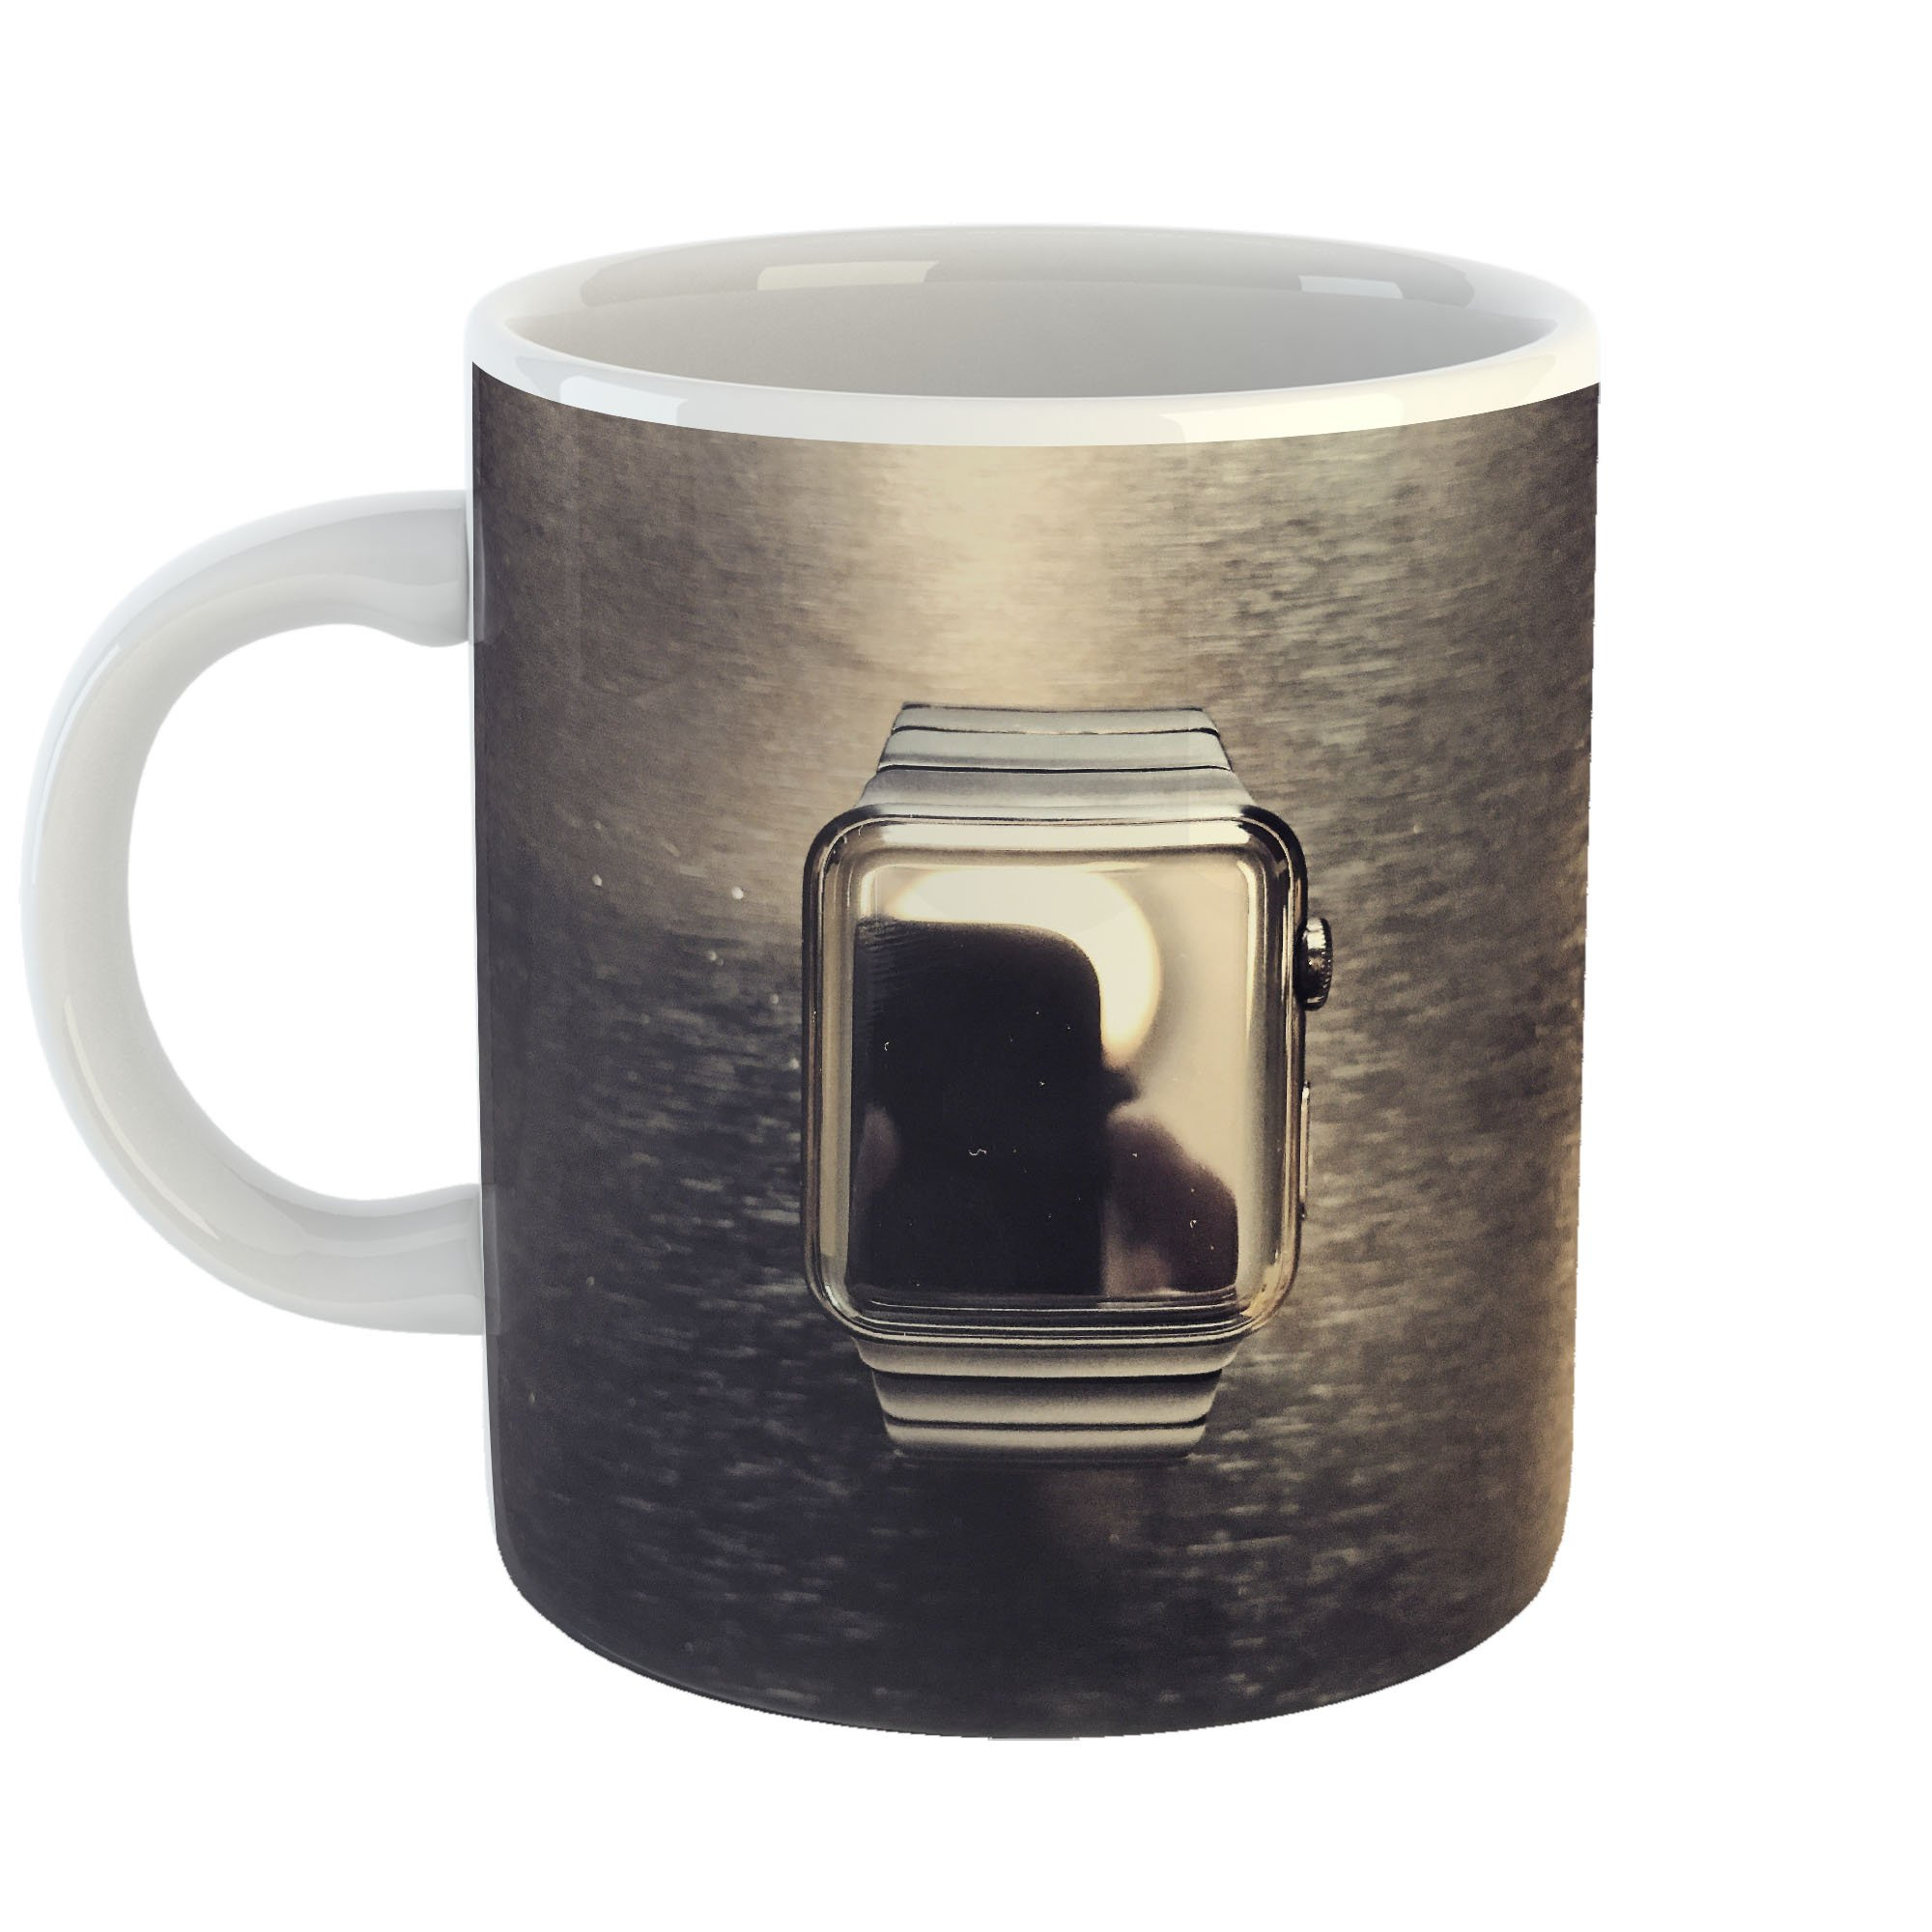 Westlake Art - Spa Decoration - 11oz Coffee Cup Mug - Modern Picture Photography Artwork Home Office Birthday Gift - 11 Ounce (2F74-F1D14)